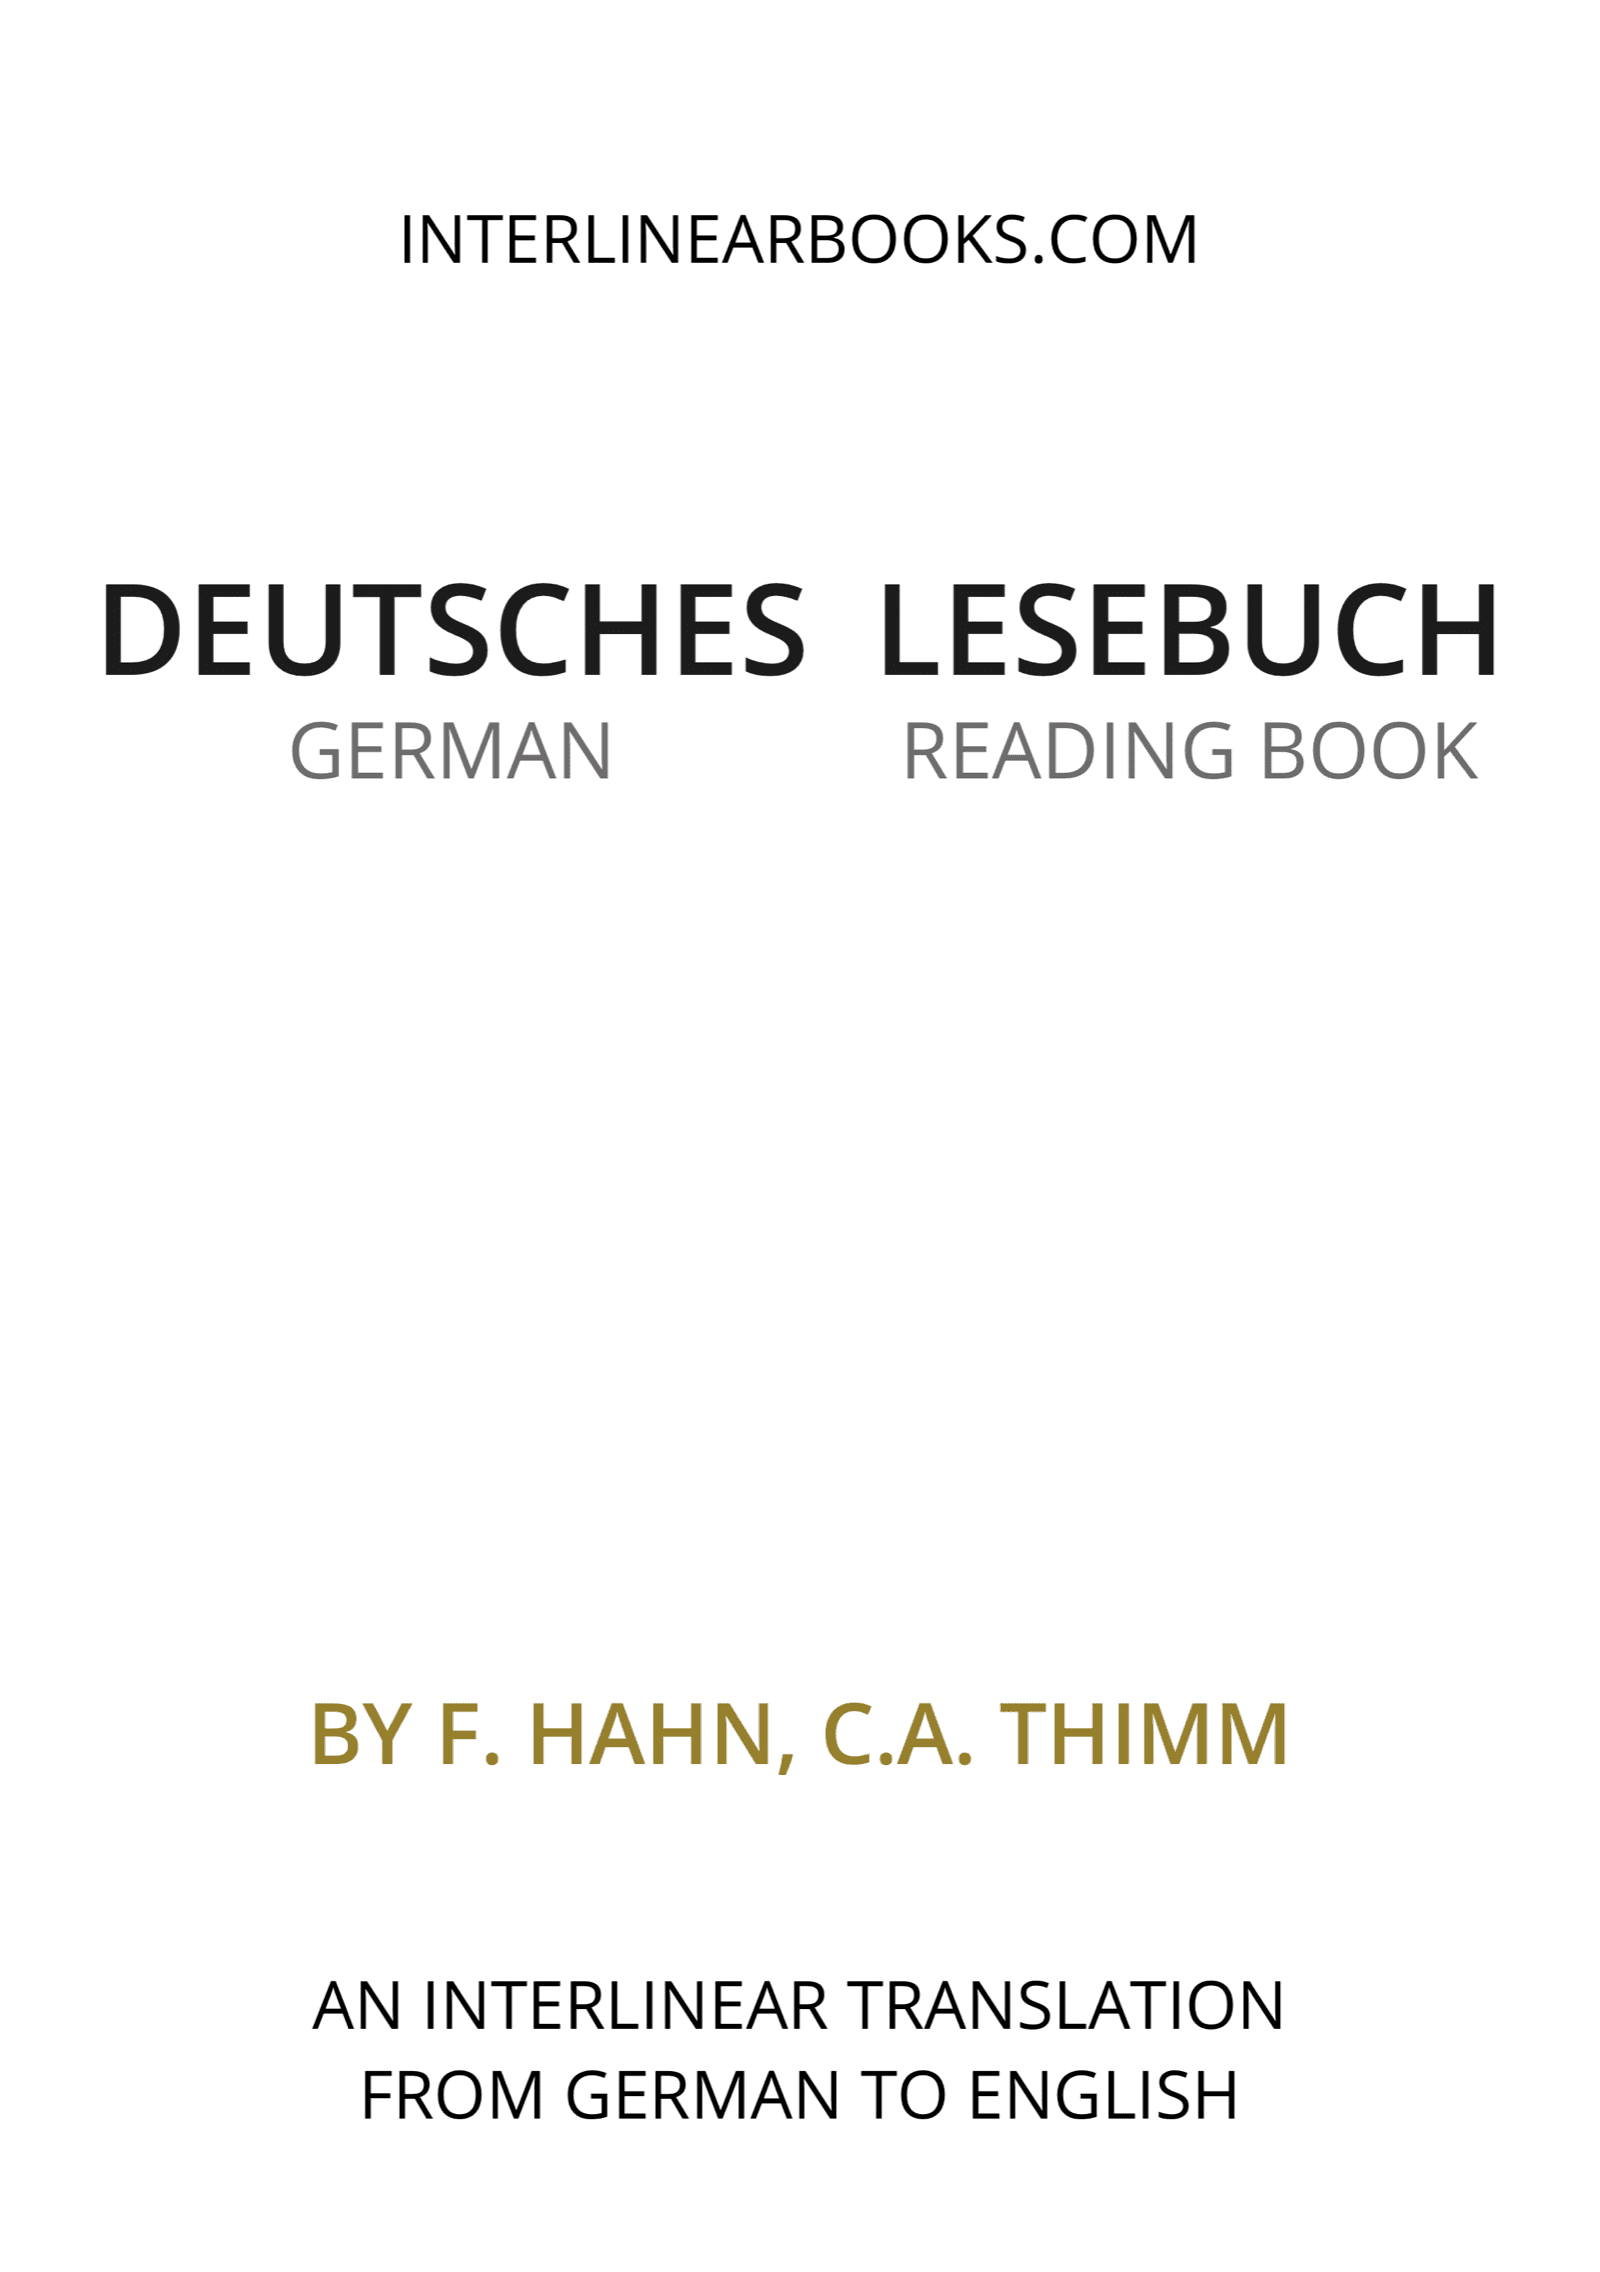 German book: Deutsches Lesebuch / German Reading Book